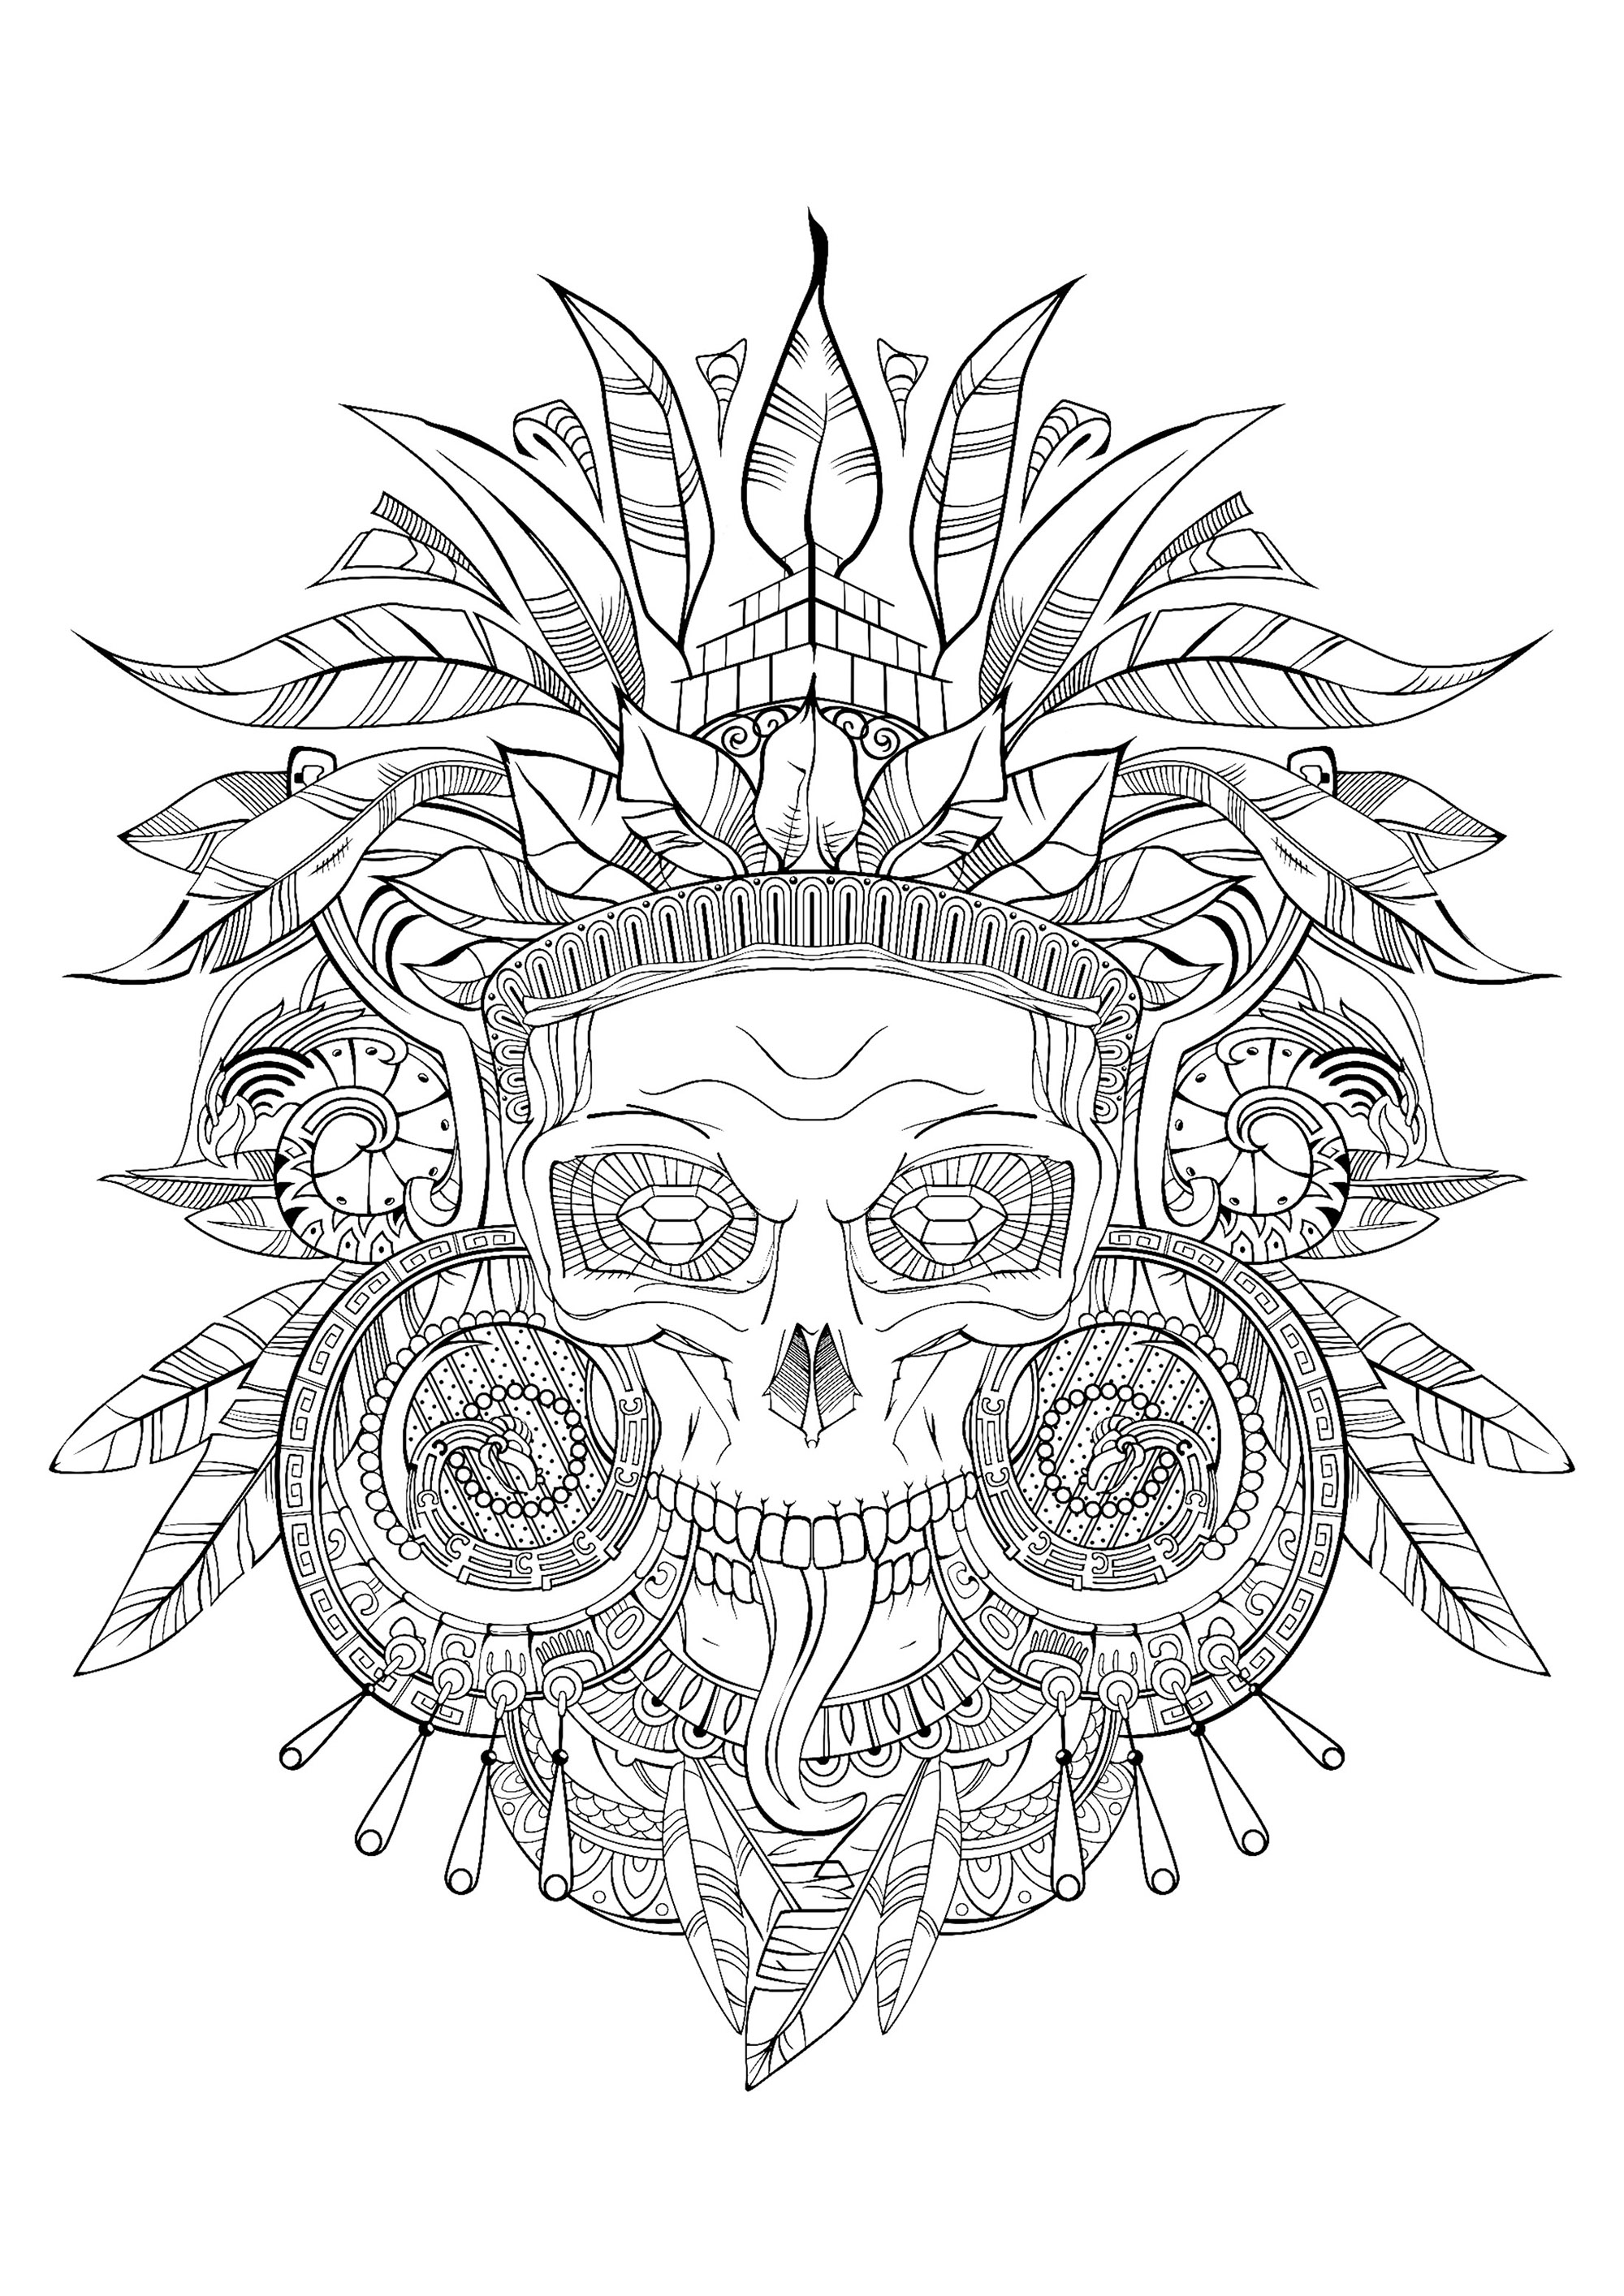 black and white coloring pages for adults pin on abstract zentangles paisley etc to color and black pages white adults coloring for